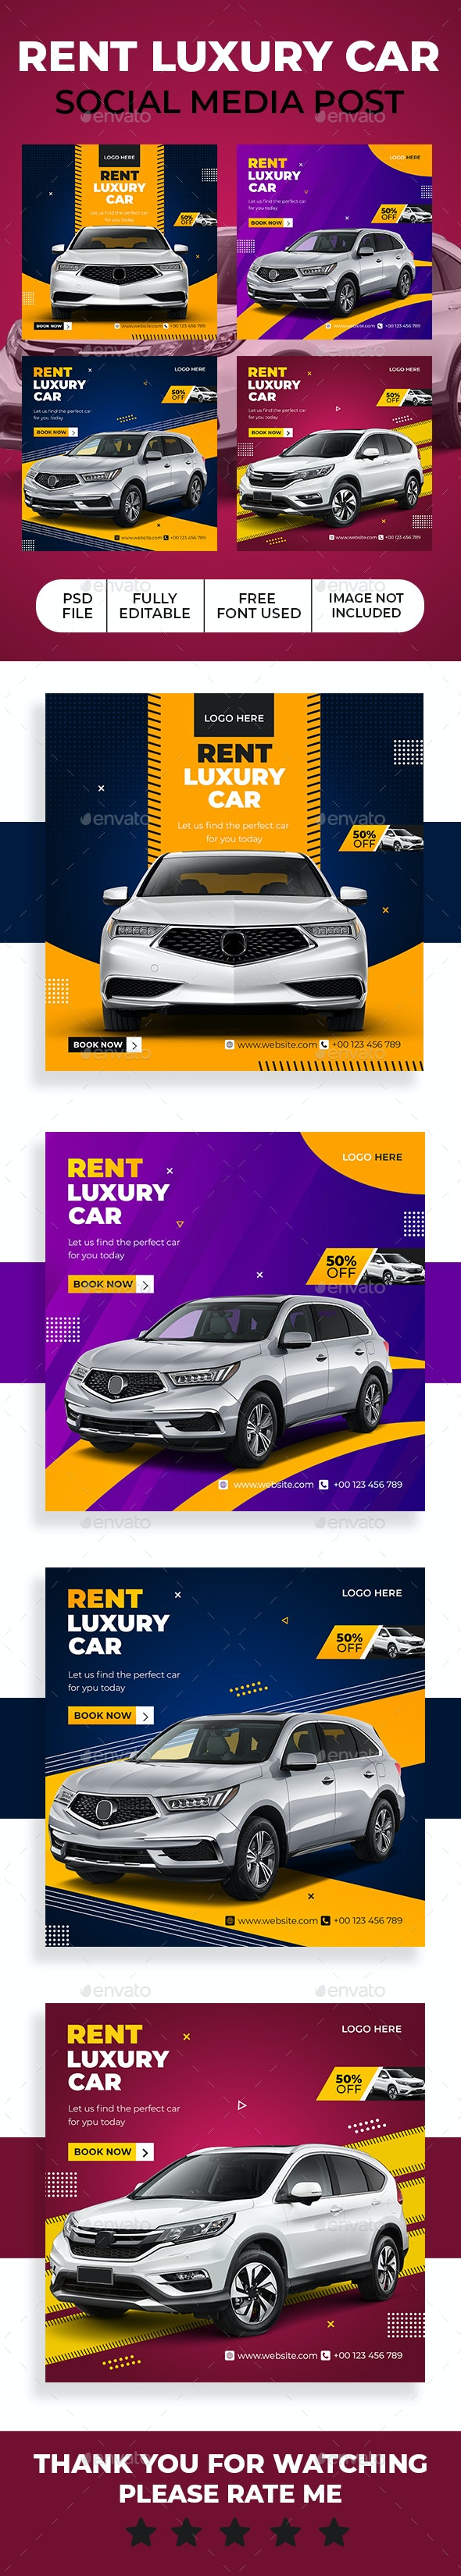 Rent Car Social Media Template - Social Media Web Elements